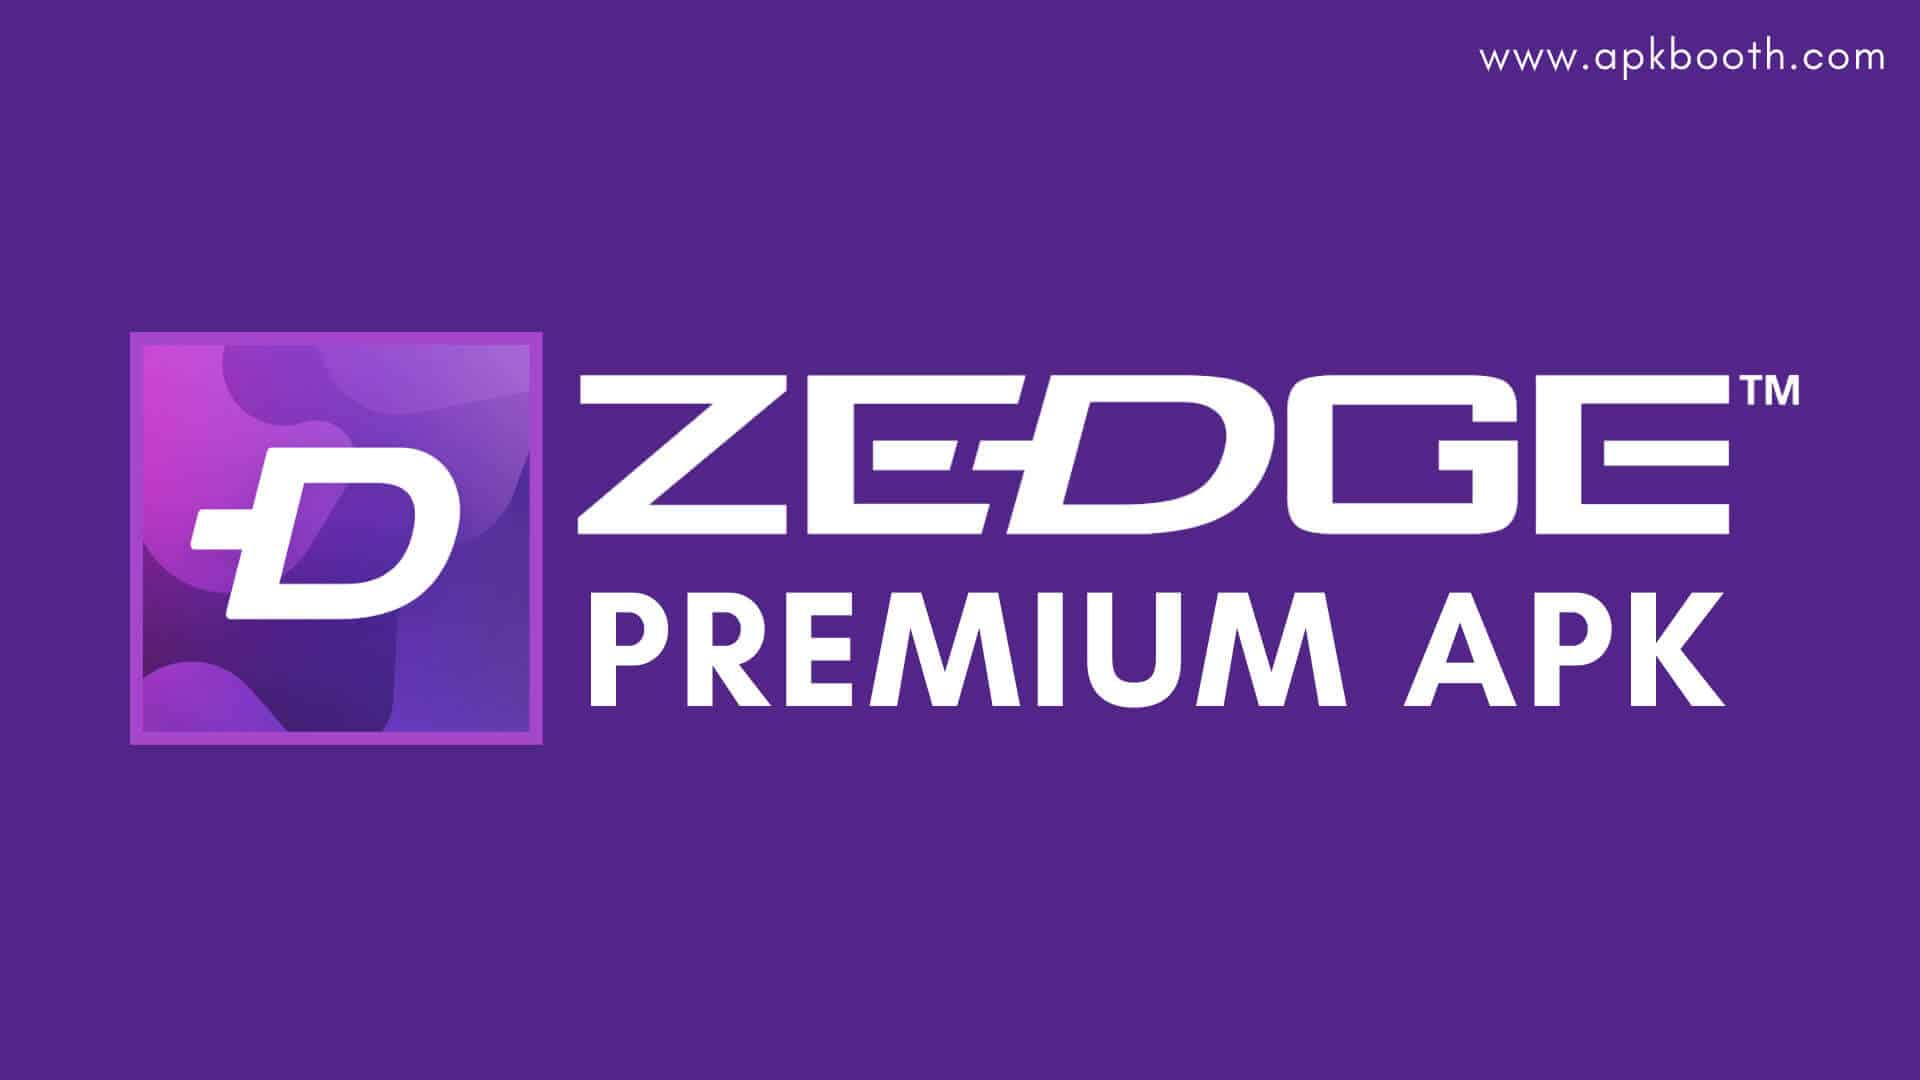 zedge premium apk